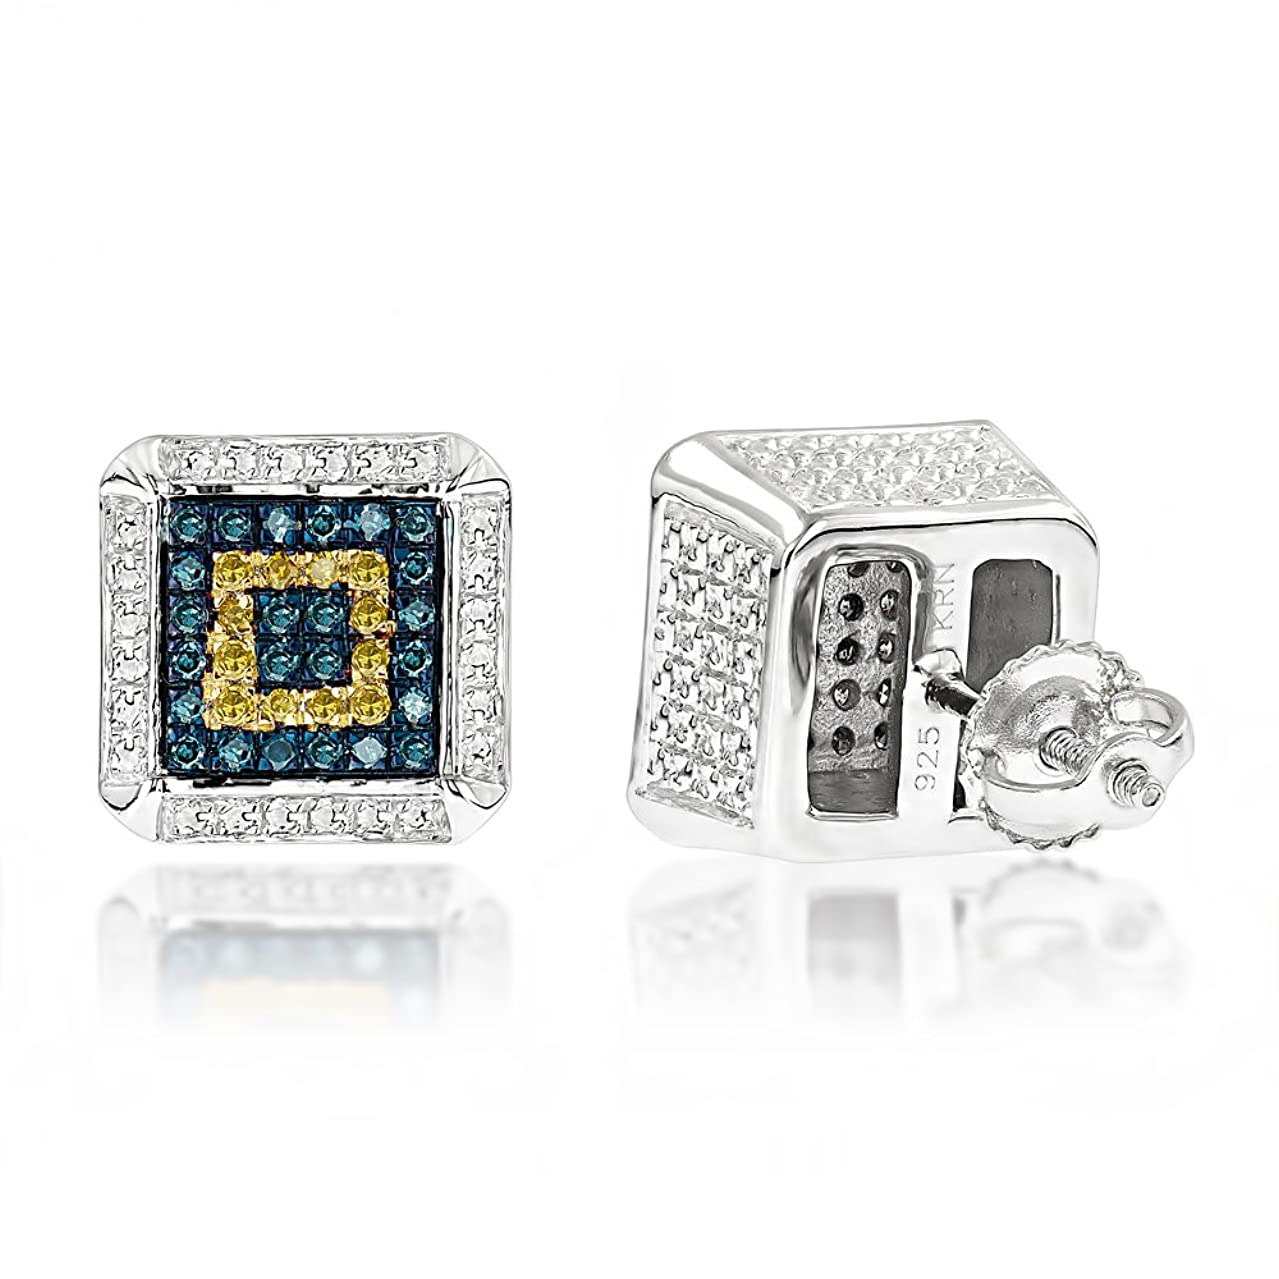 Sterling Silver Square Design Blue Yellow Natural 0.3 Ctw Diamonds Earring Studs For Her